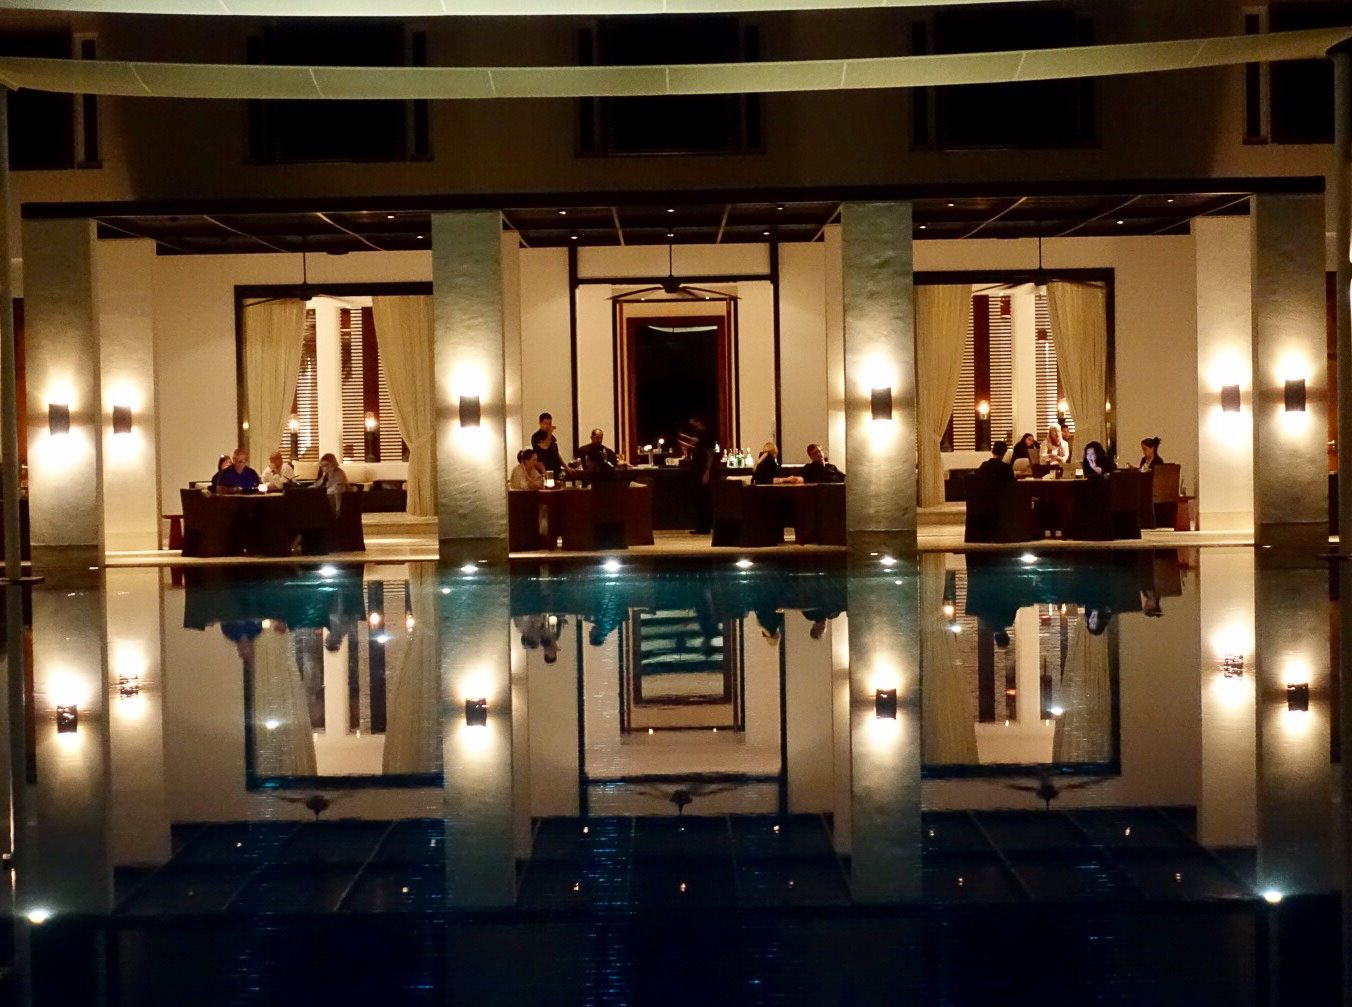 The Chedi lighting at night.